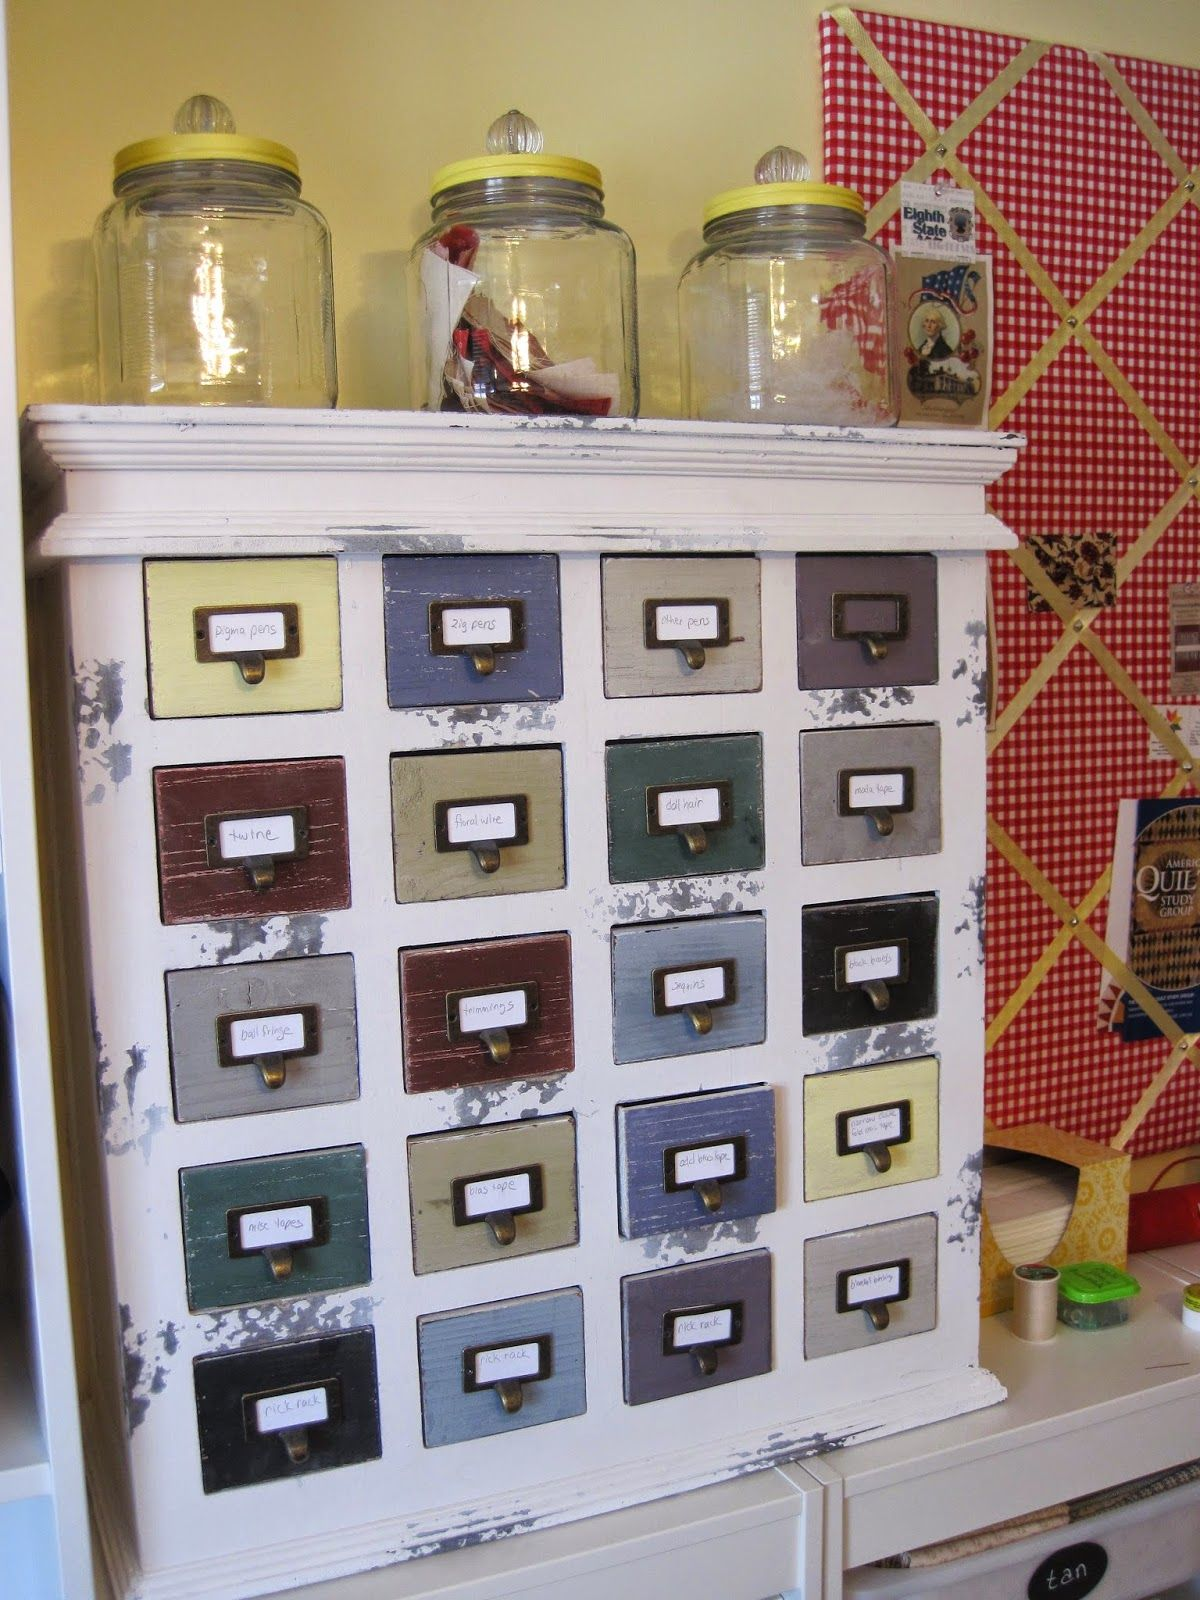 Apothecary Cabinet From Hobby Lobby. Perfect For Notions In My Sewing Room.